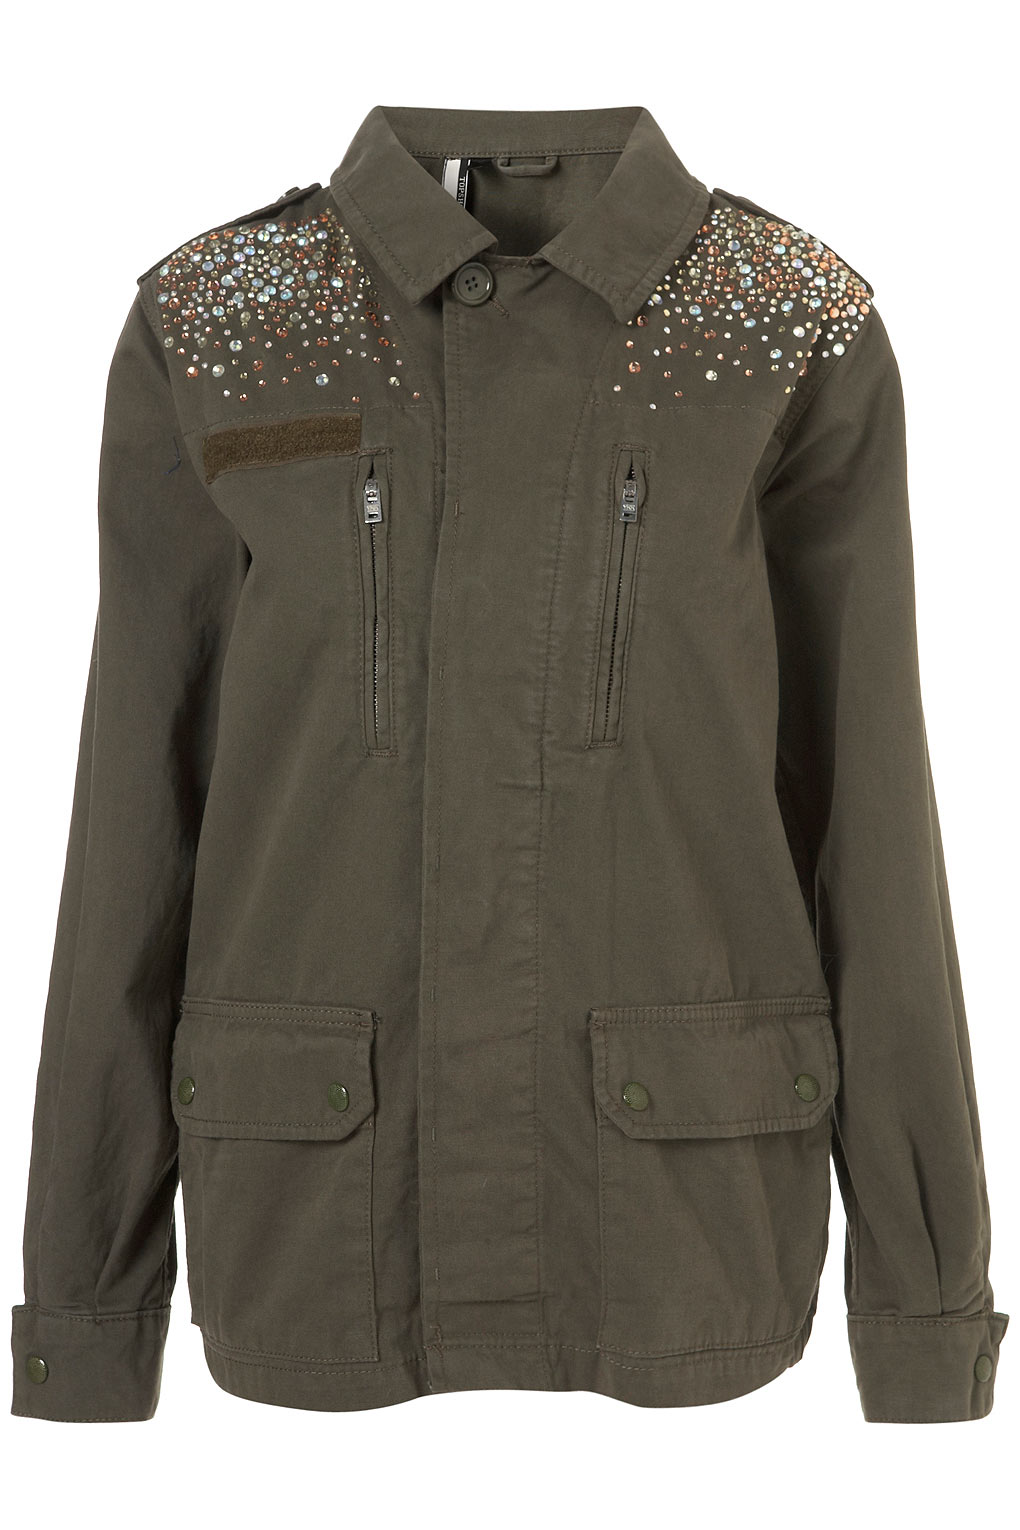 Lyst Topshop Crystal Embellished Army Jacket In Green